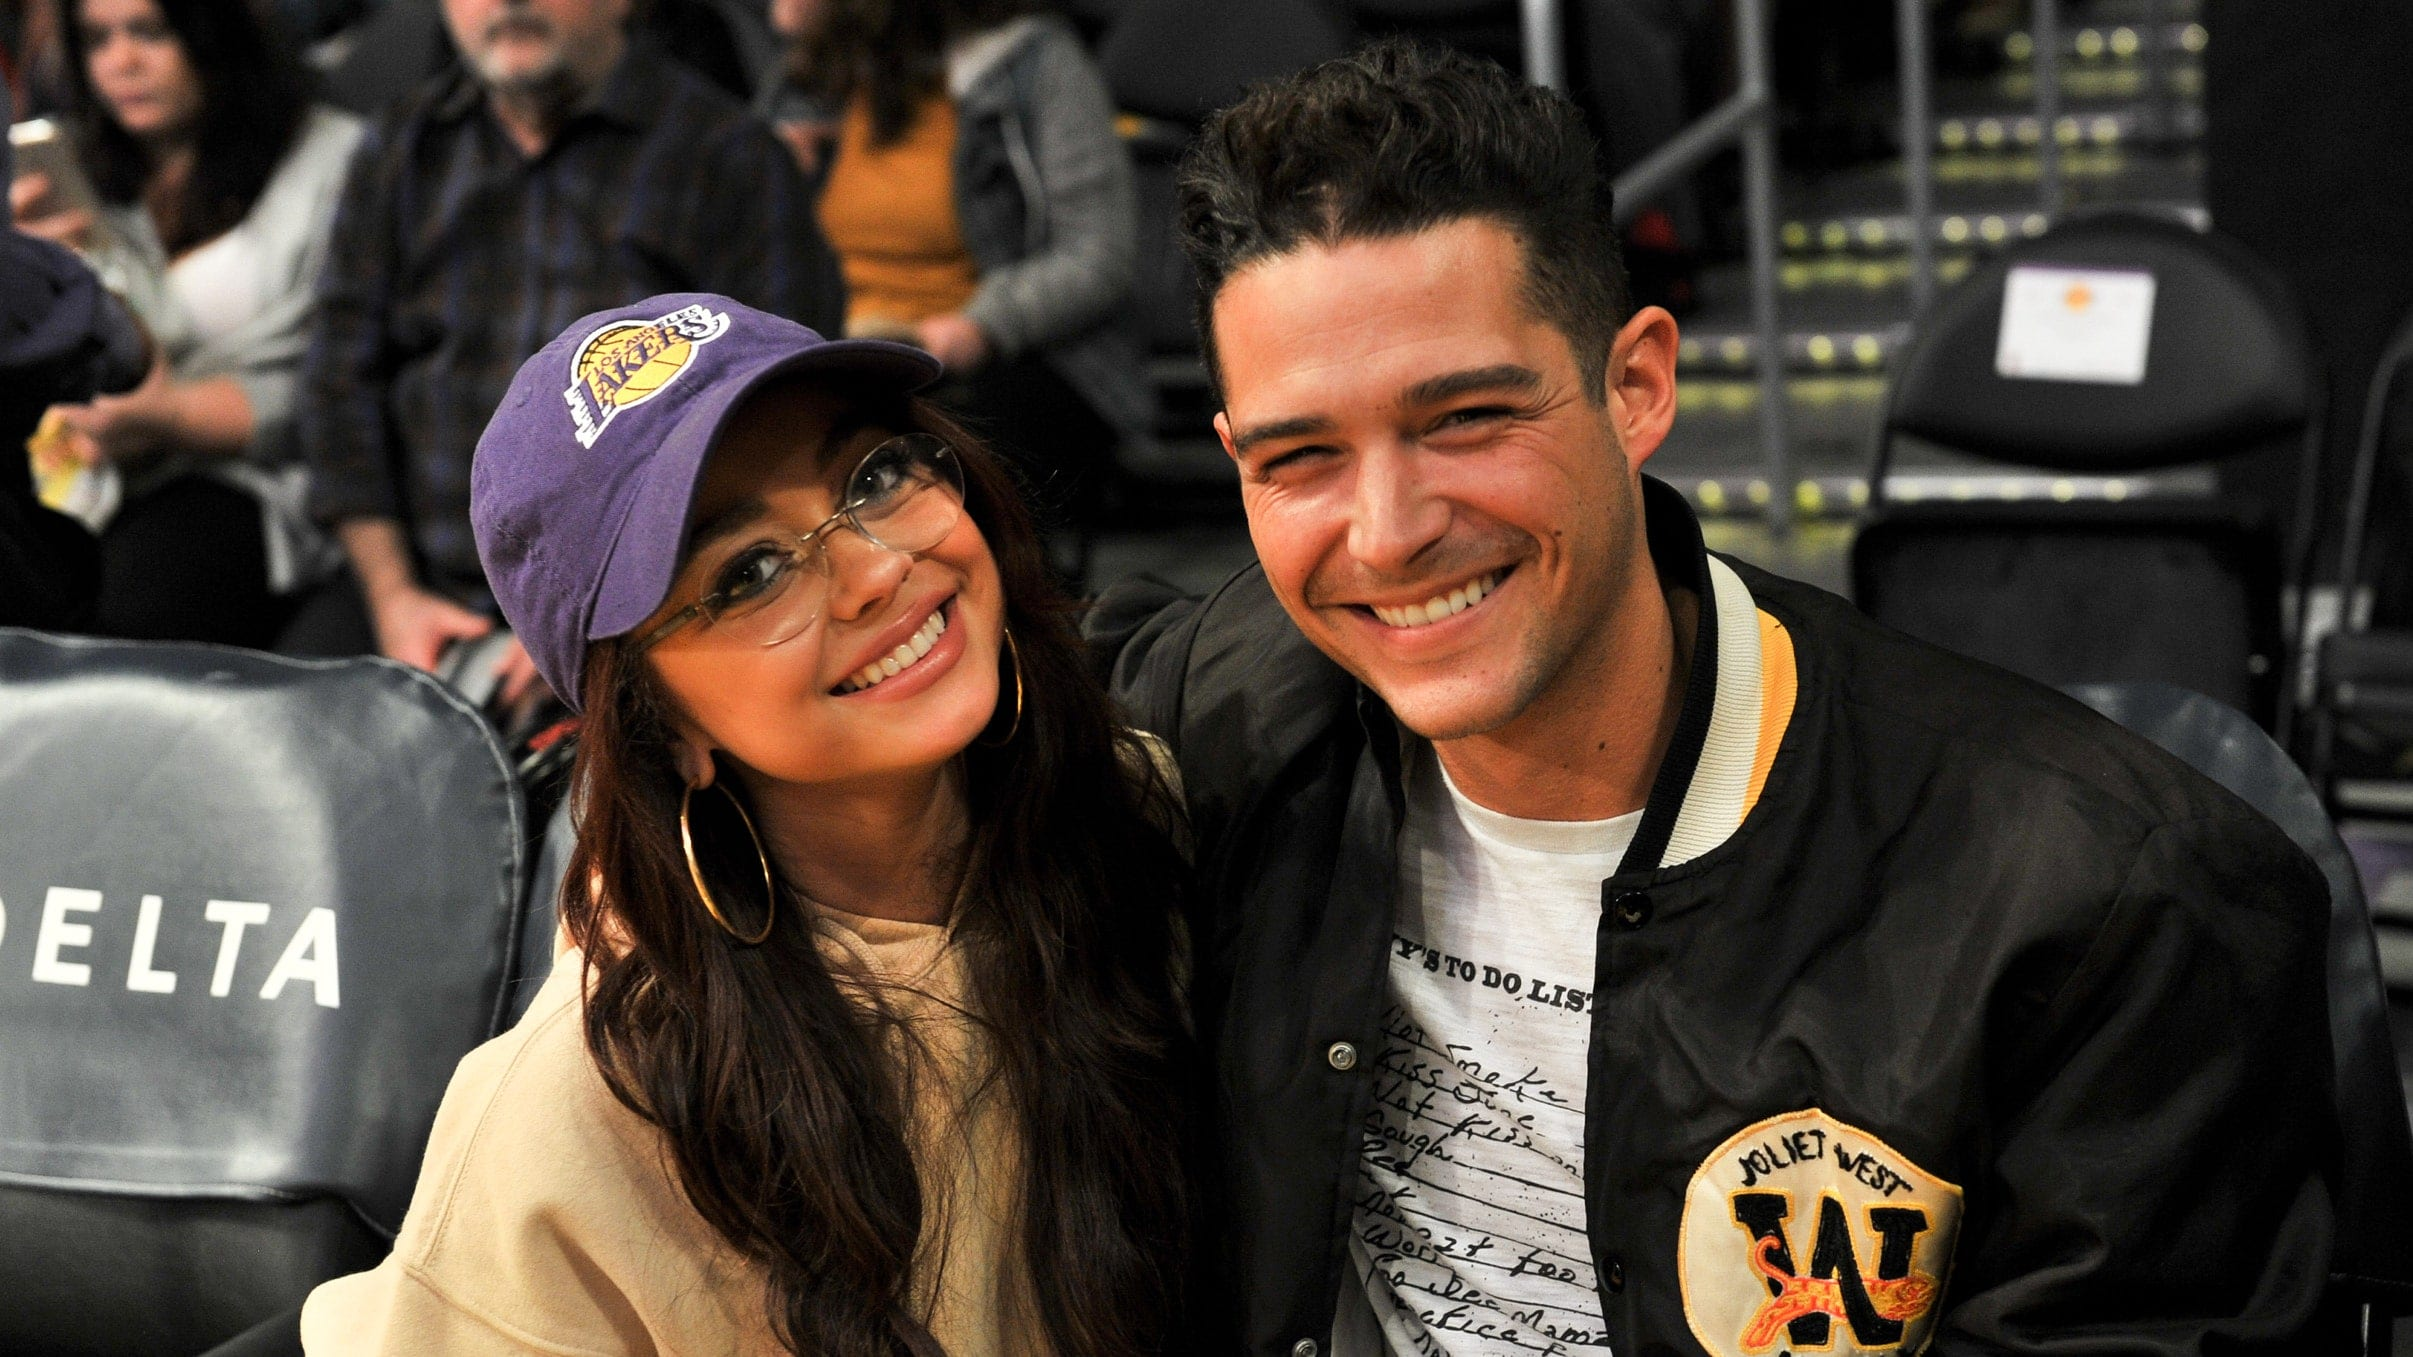 The Bachelorette's Wells Adams: Who is He Dating?